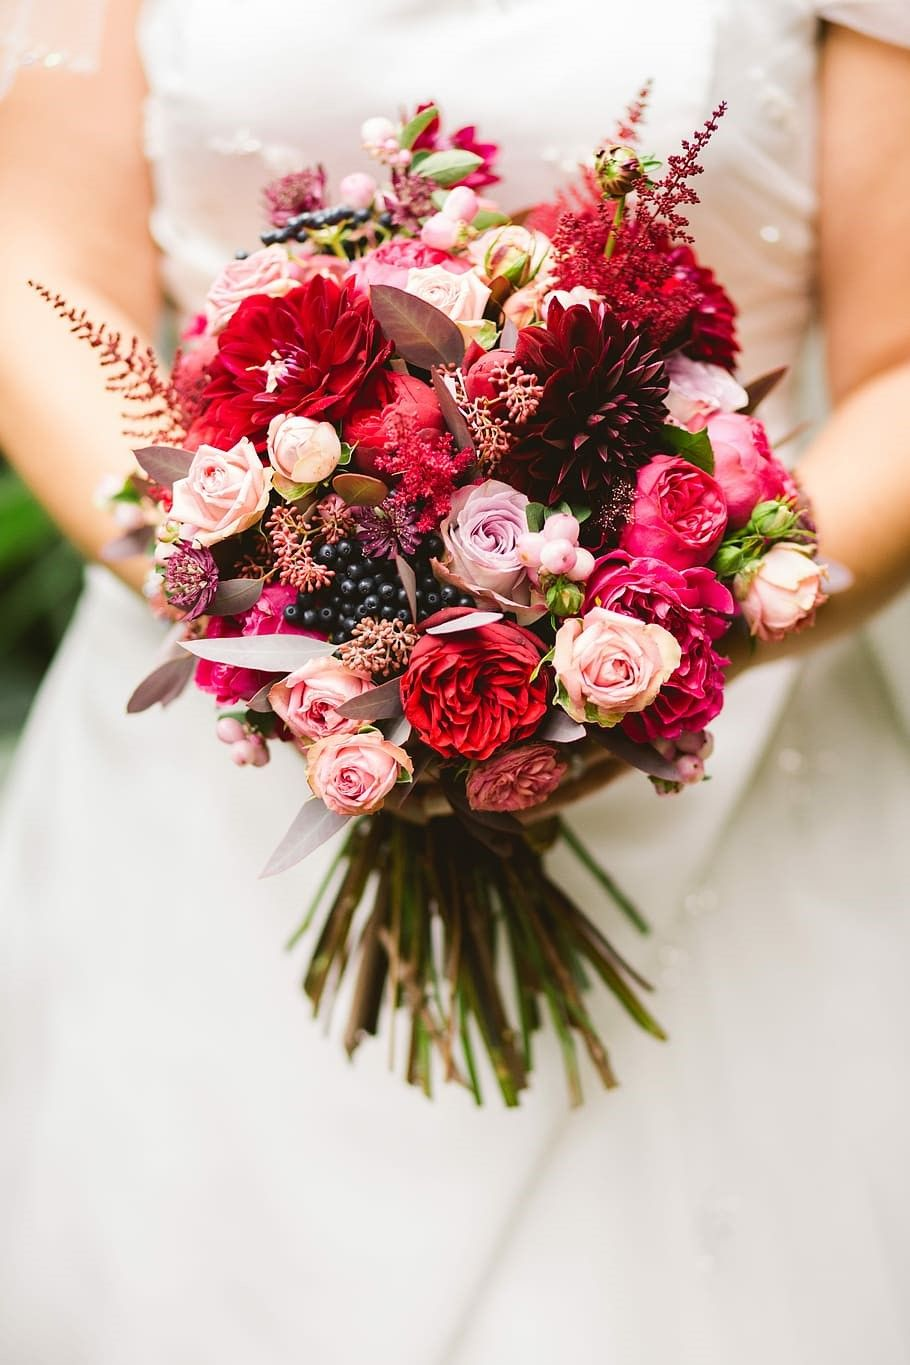 A woman holding wedding bouquet.